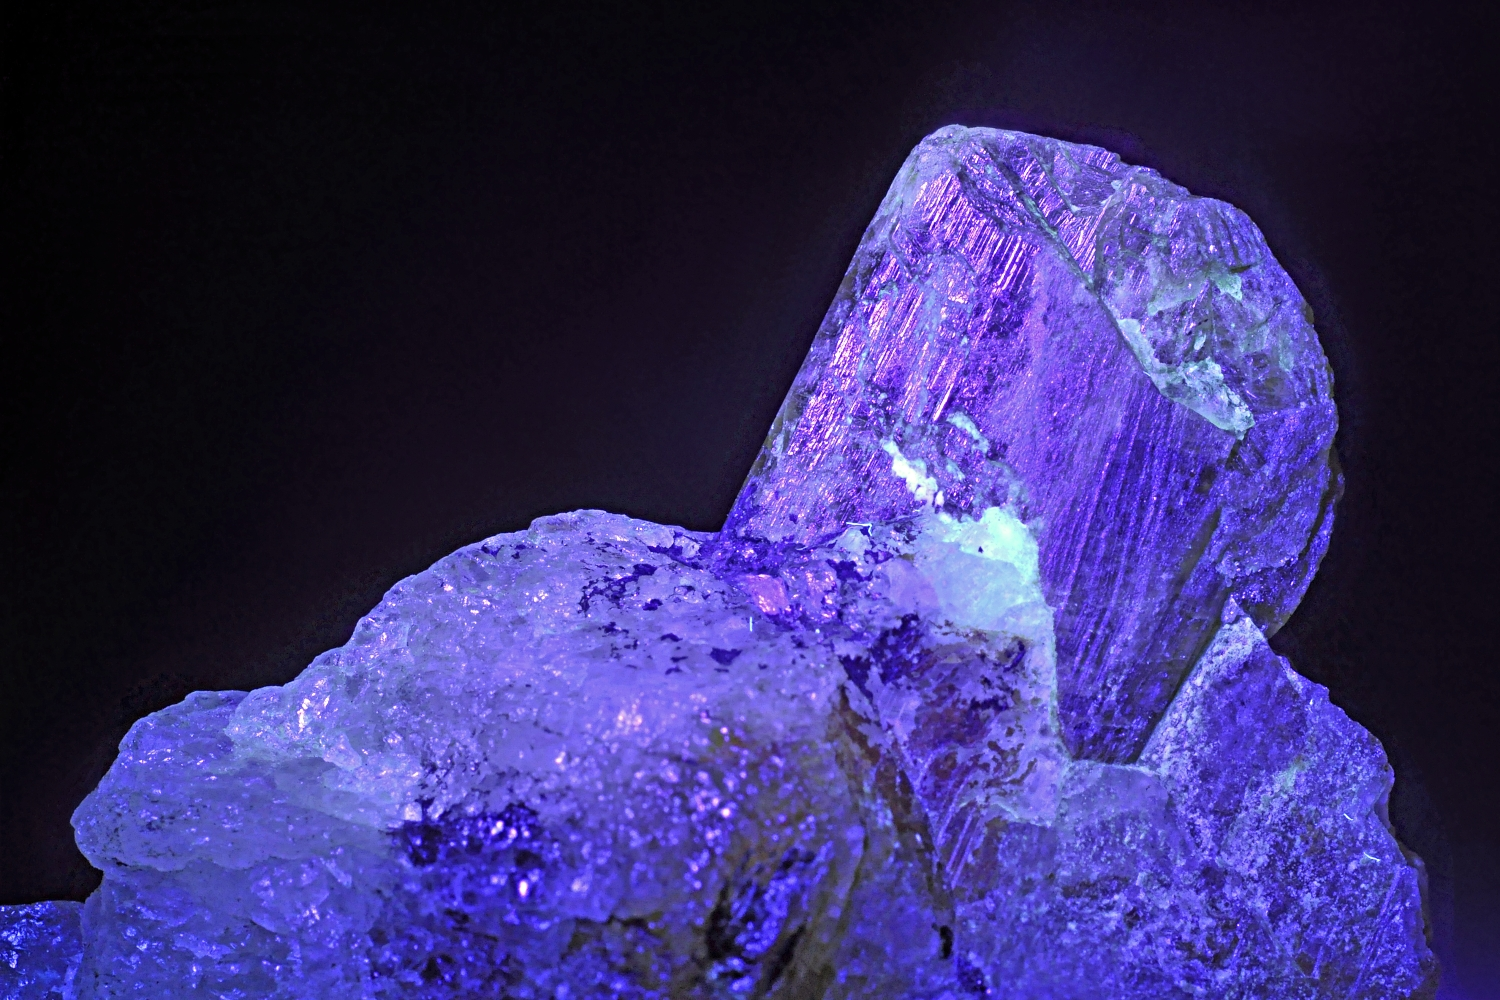 Chrysobéryl var. alexandrite sous under UV light (Madagascar)